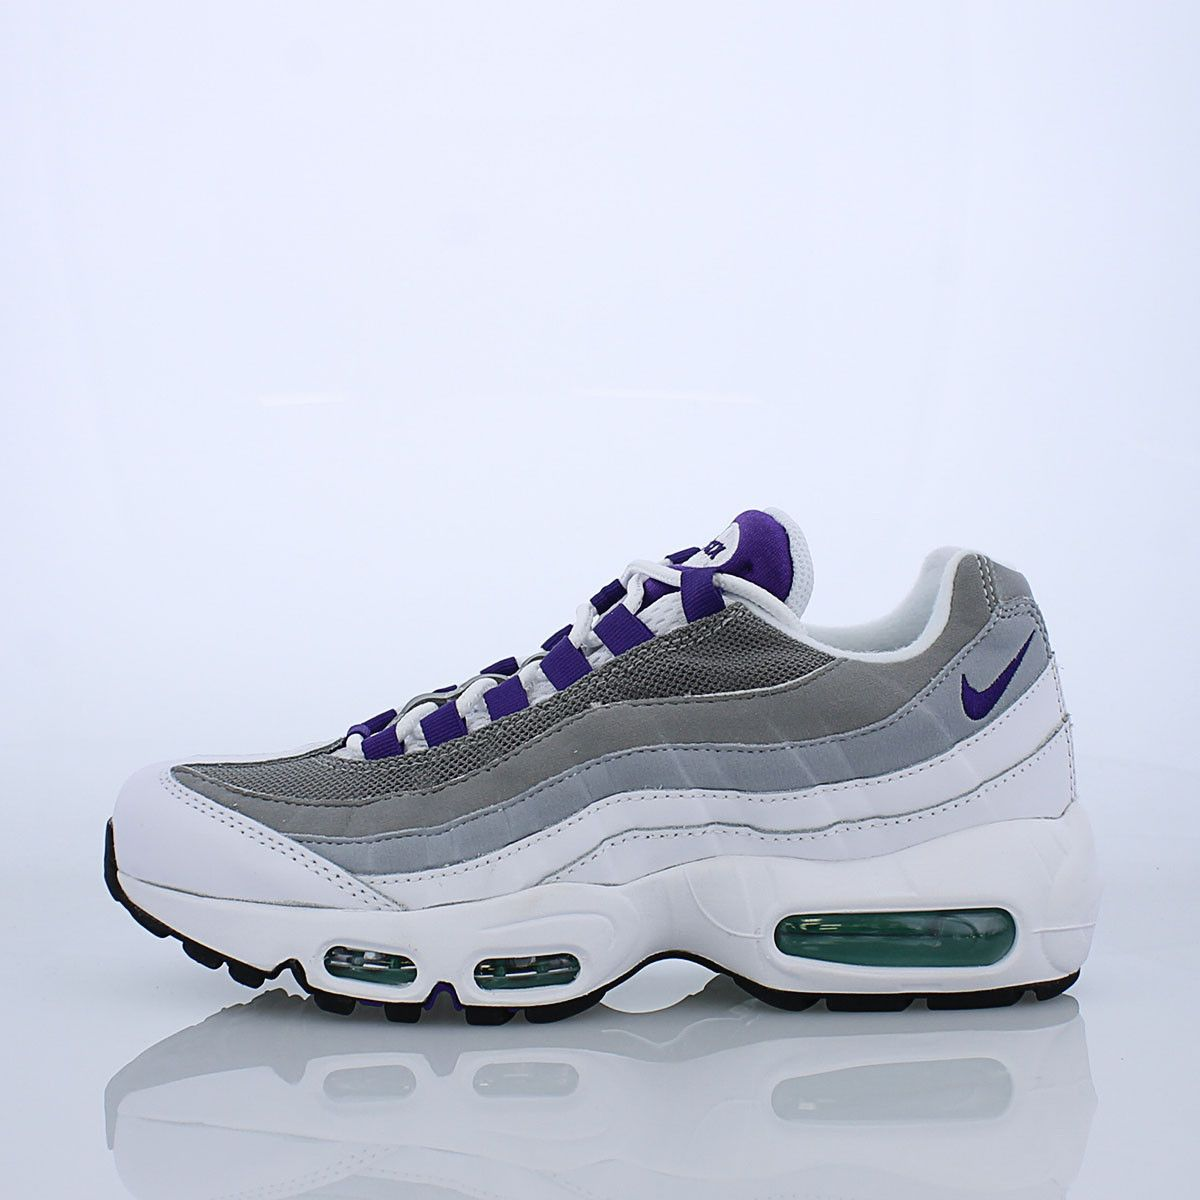 pretty nice cf011 032b9 Nike Air Max 95 OG (W) | Women's Nike 2018 Collection in ...